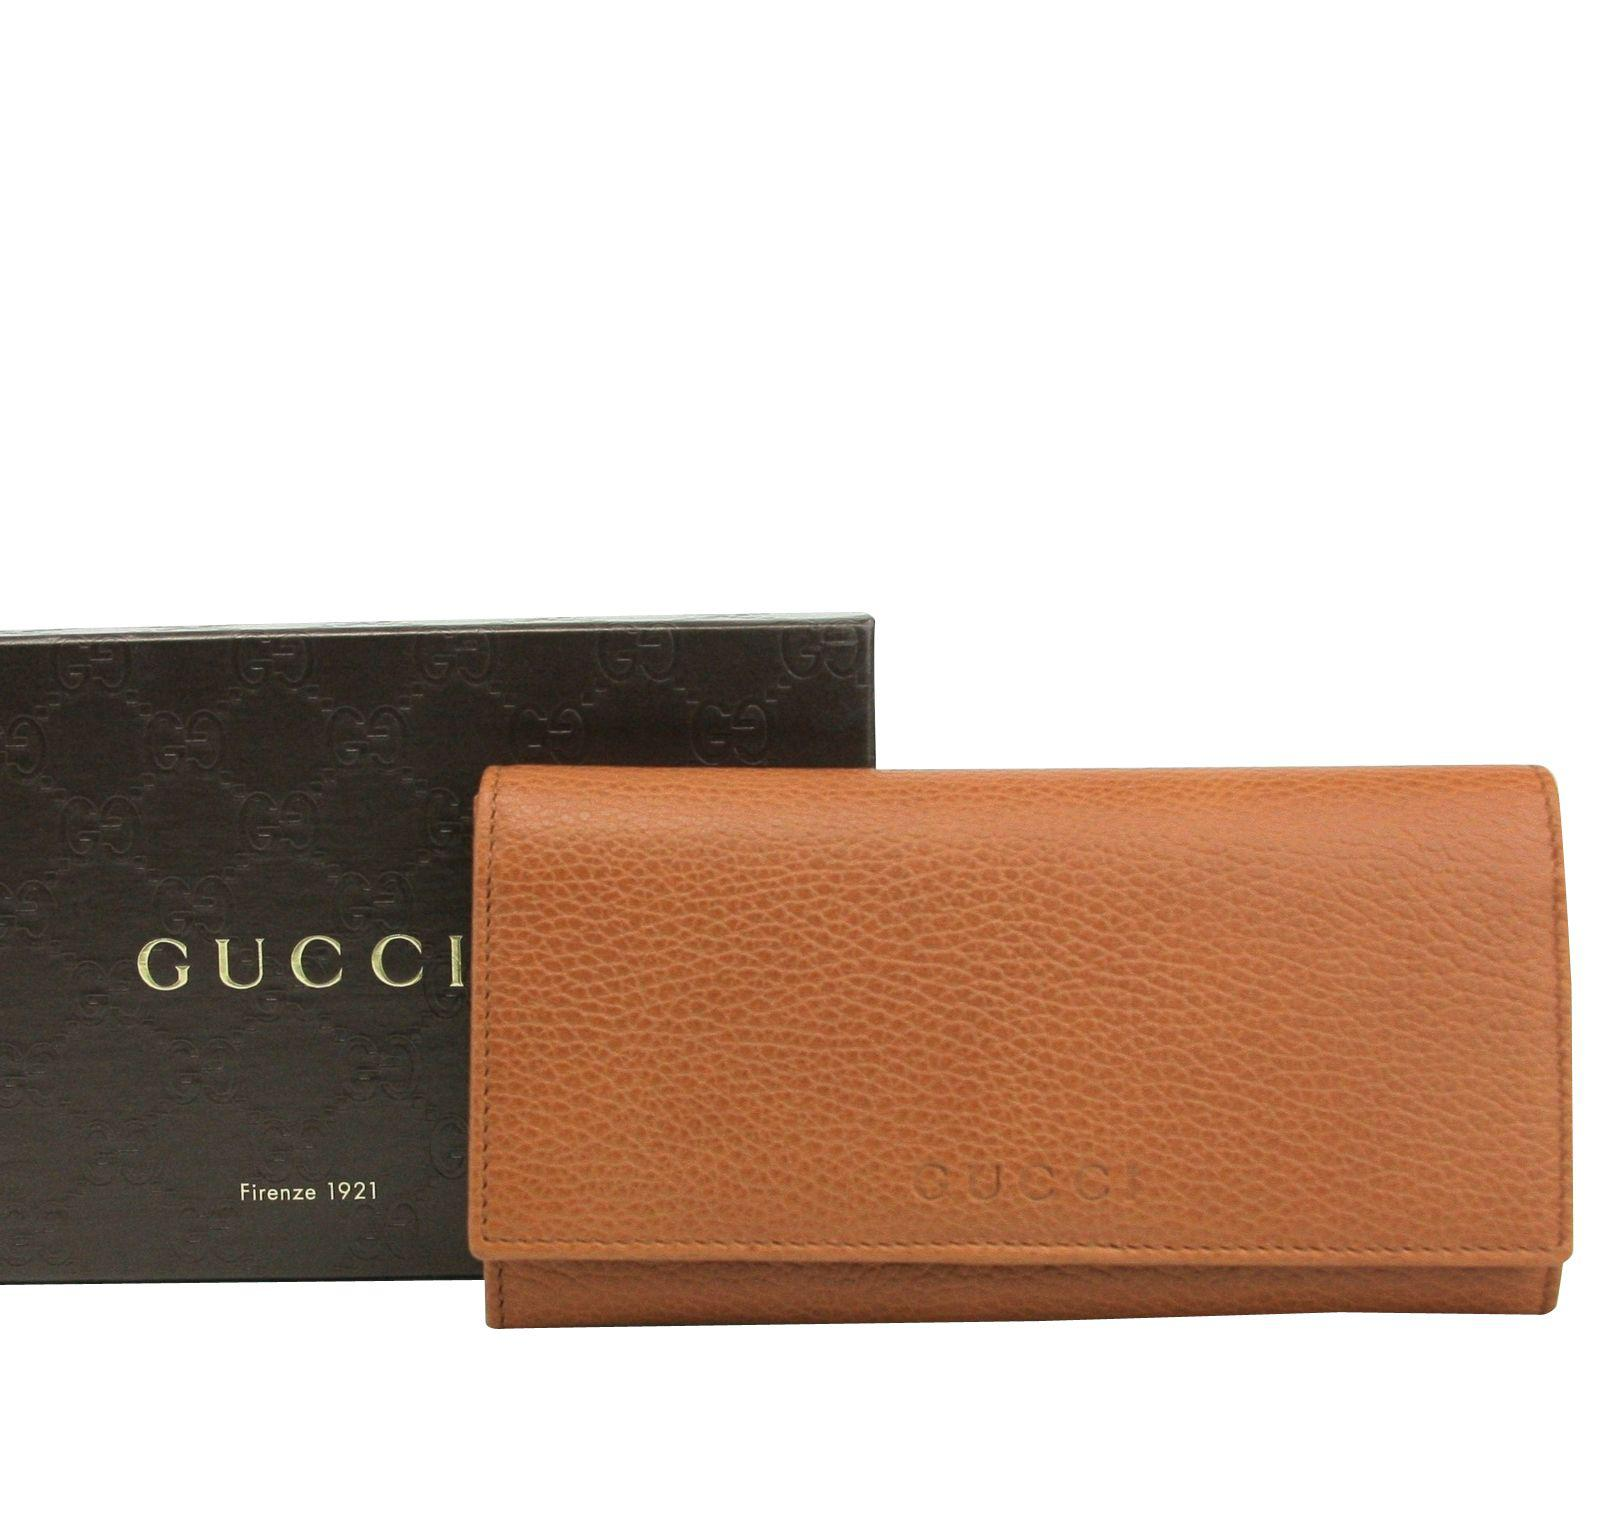 06ae09bb988177 Gucci - Brown Long/continental Dark Orange Leather Wallet With Logo 346058  7614 - Lyst. View fullscreen